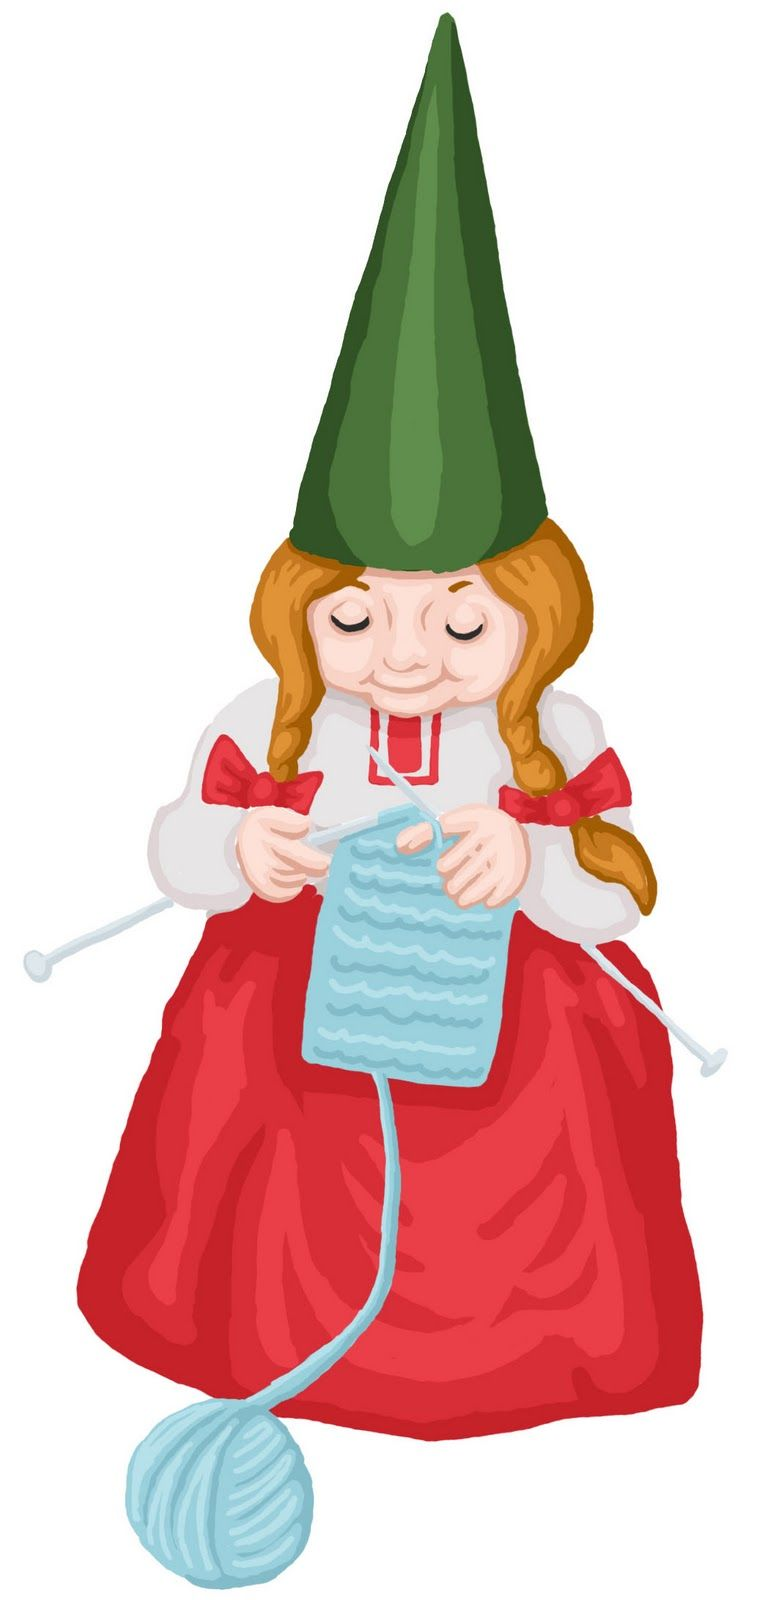 Gnome clipart gnome hat. Knitting girl mian room